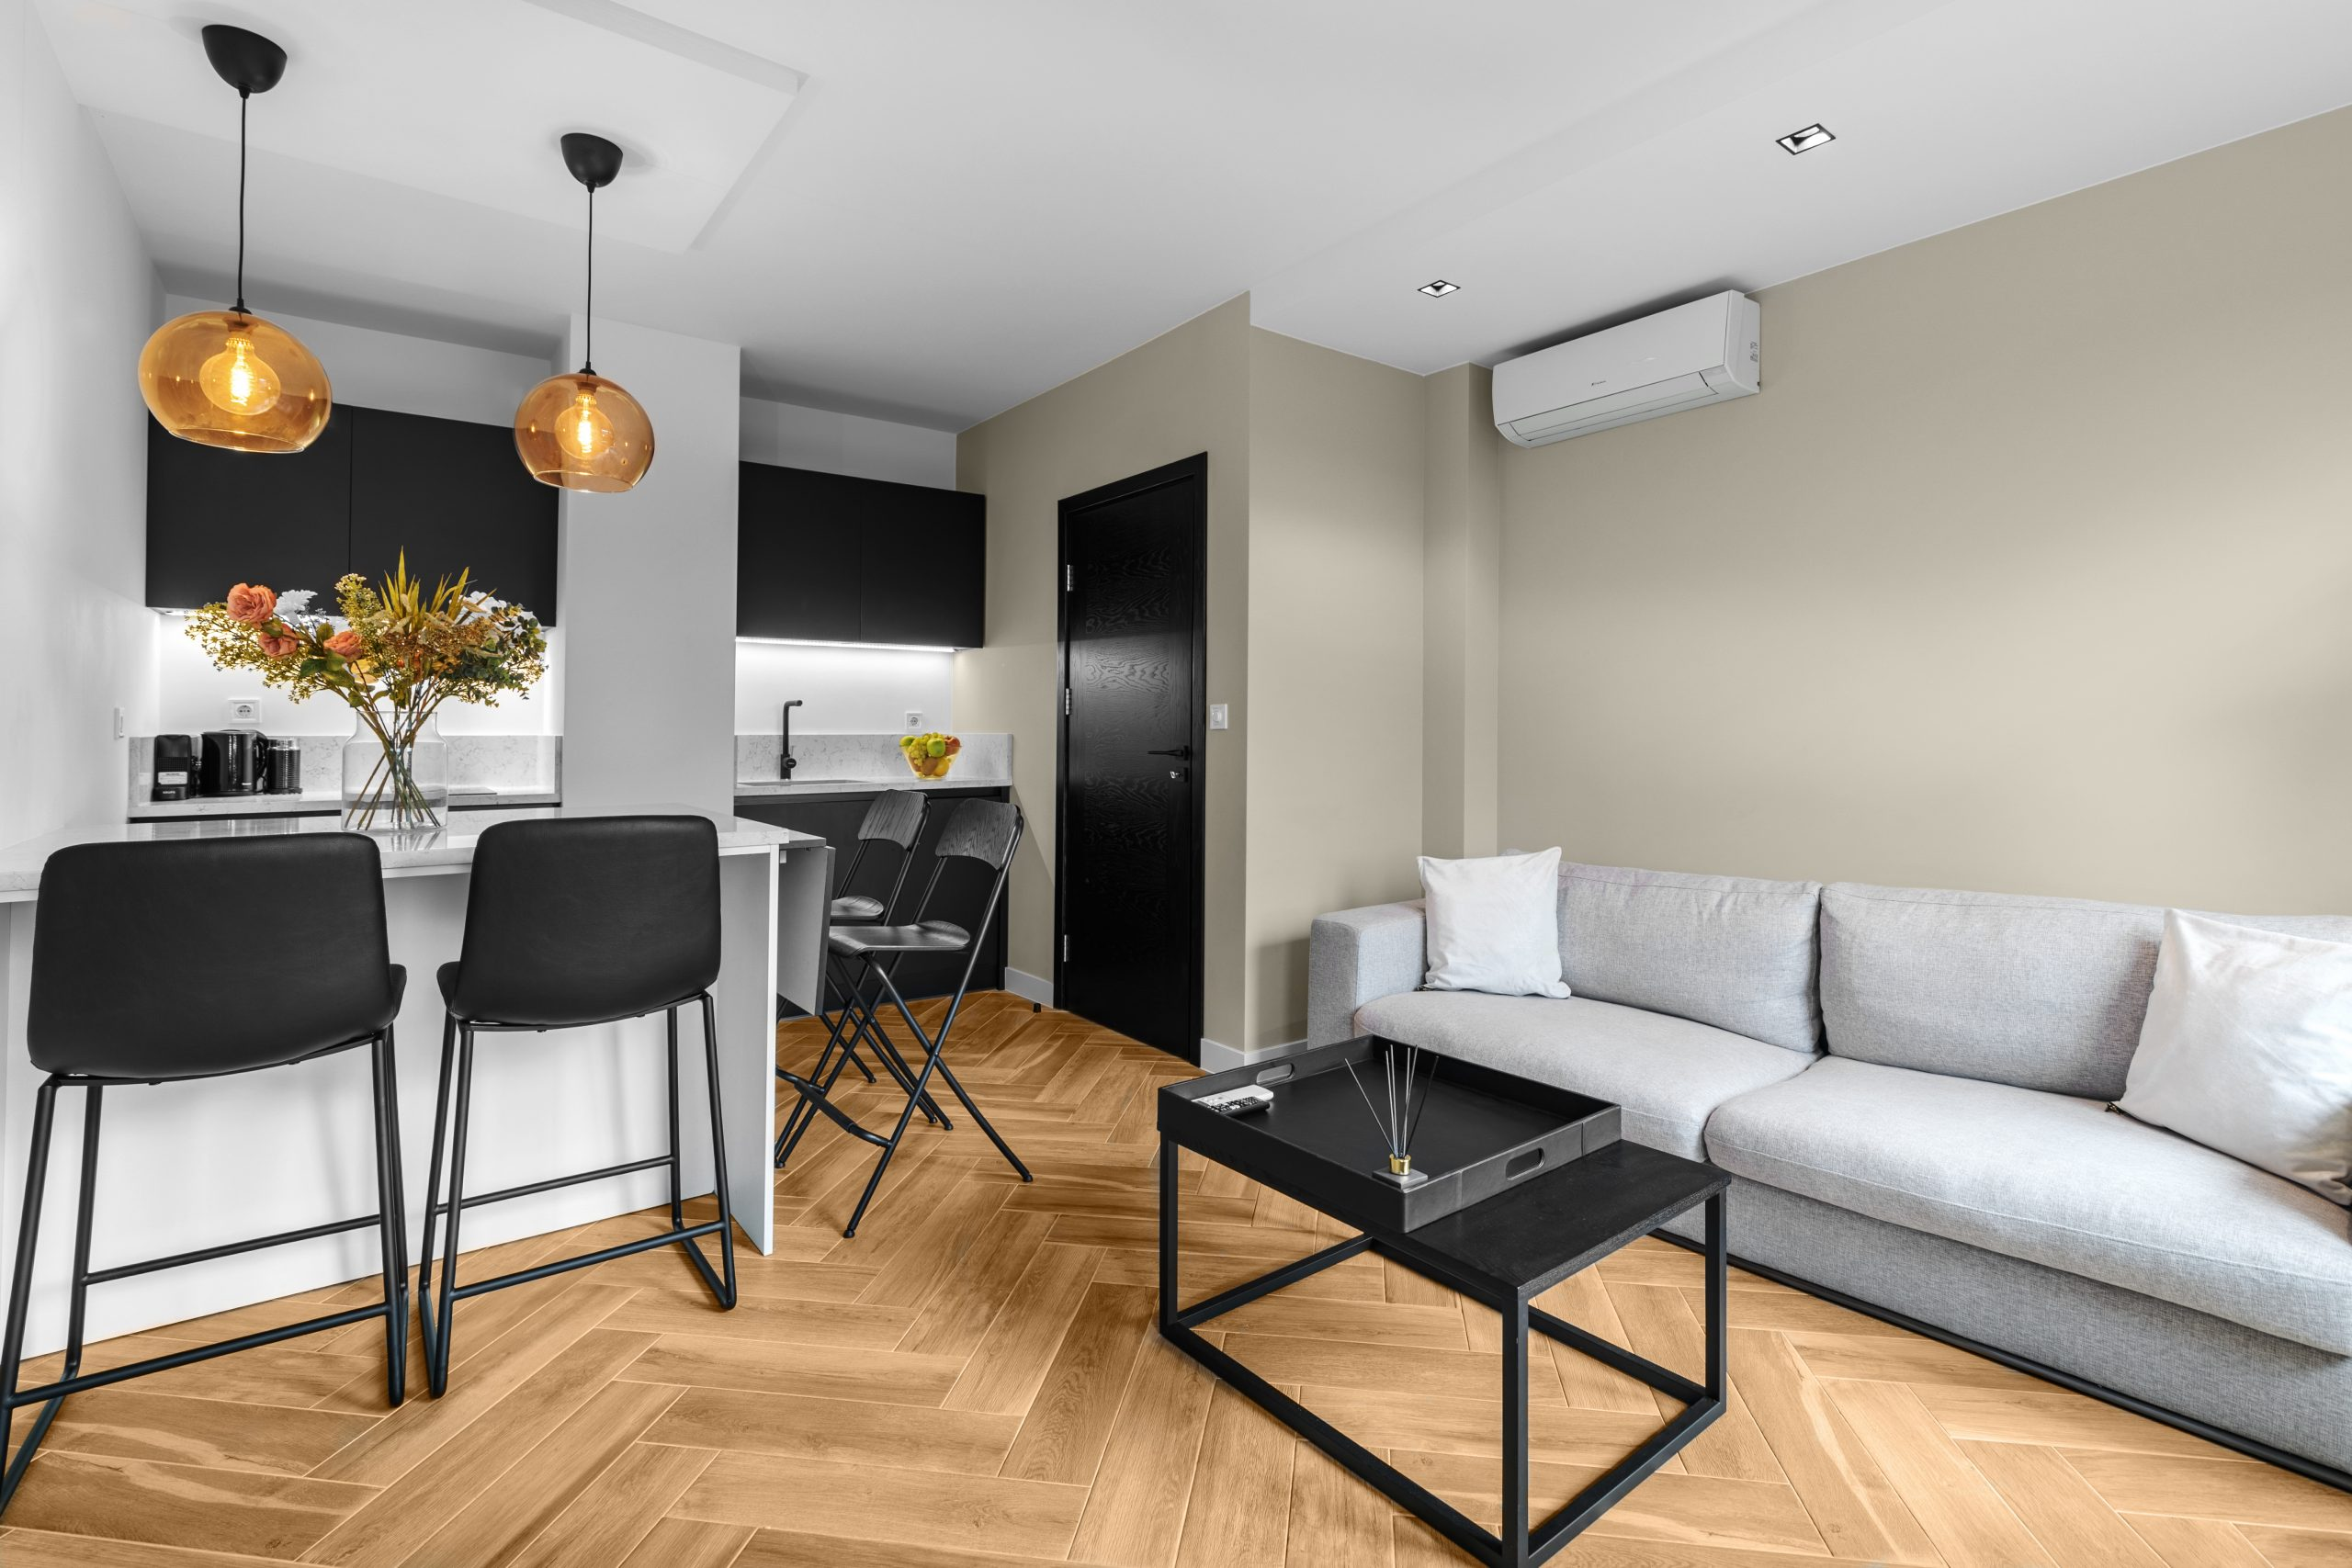 Deluxe holiday apartment for rent in Varna